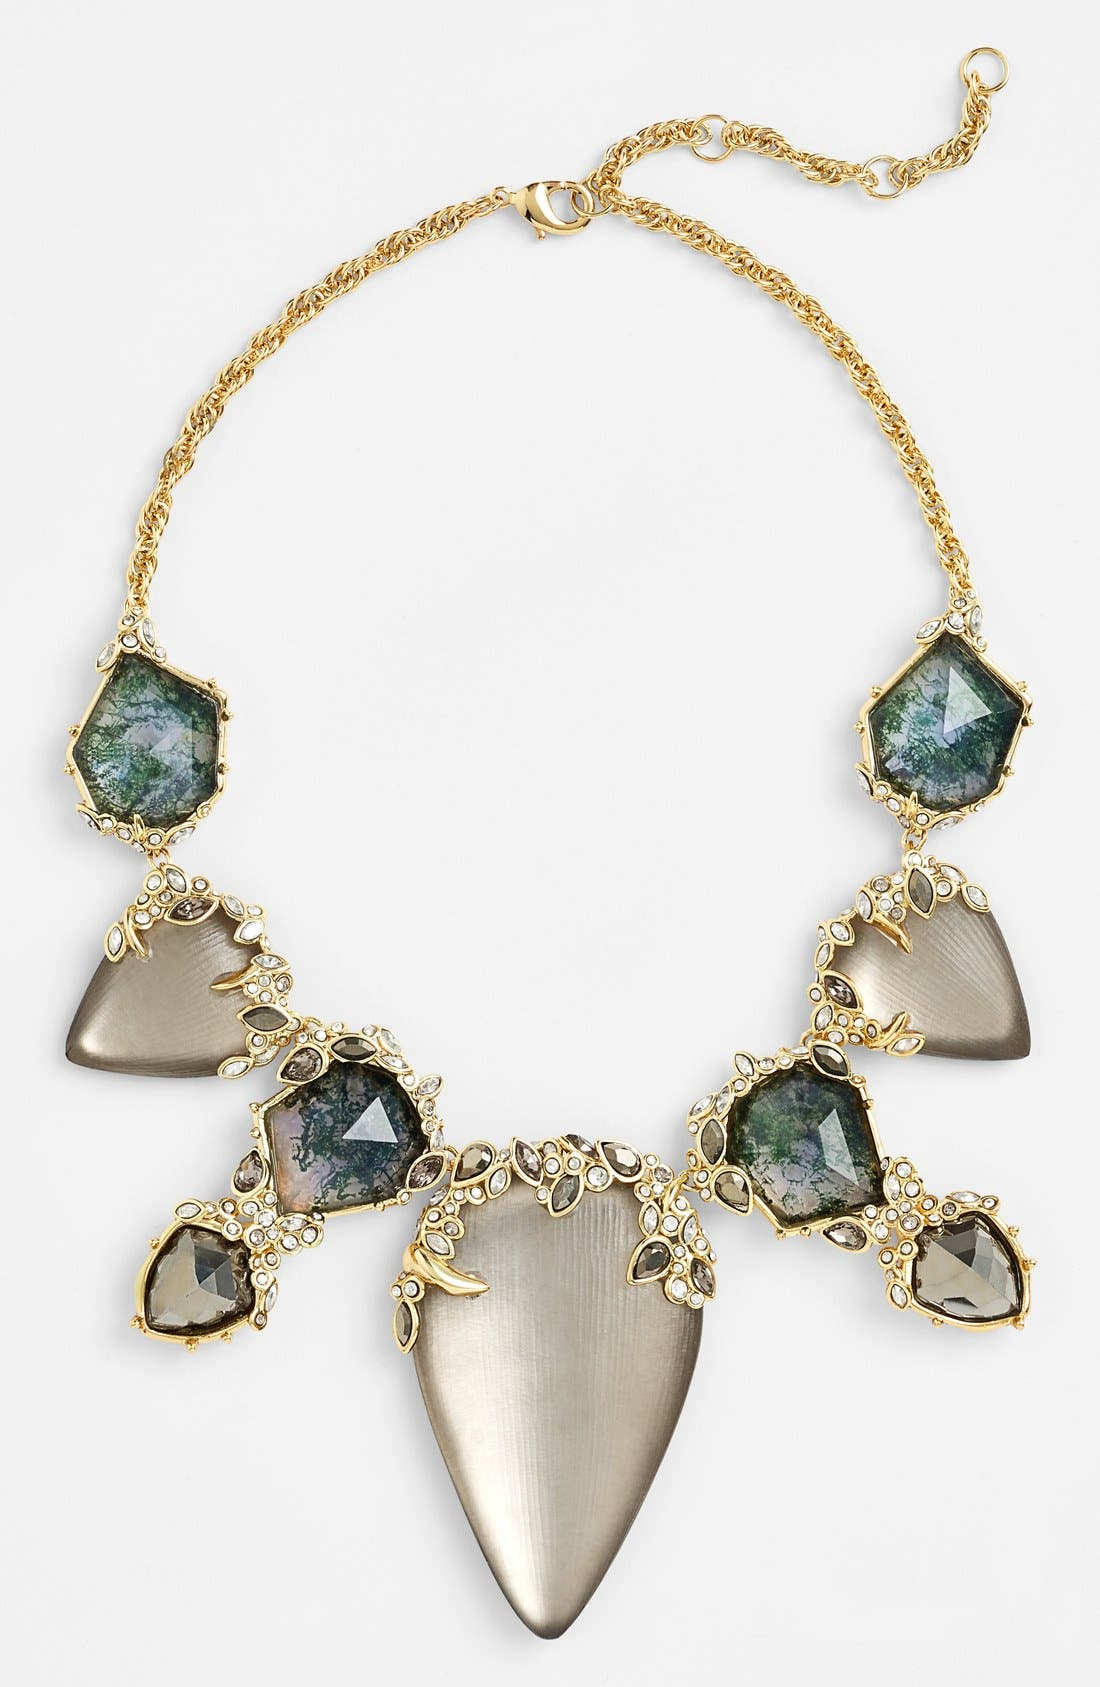 Main Image - Alexis Bittar 'Lucite® - Imperial' Frontal Necklace